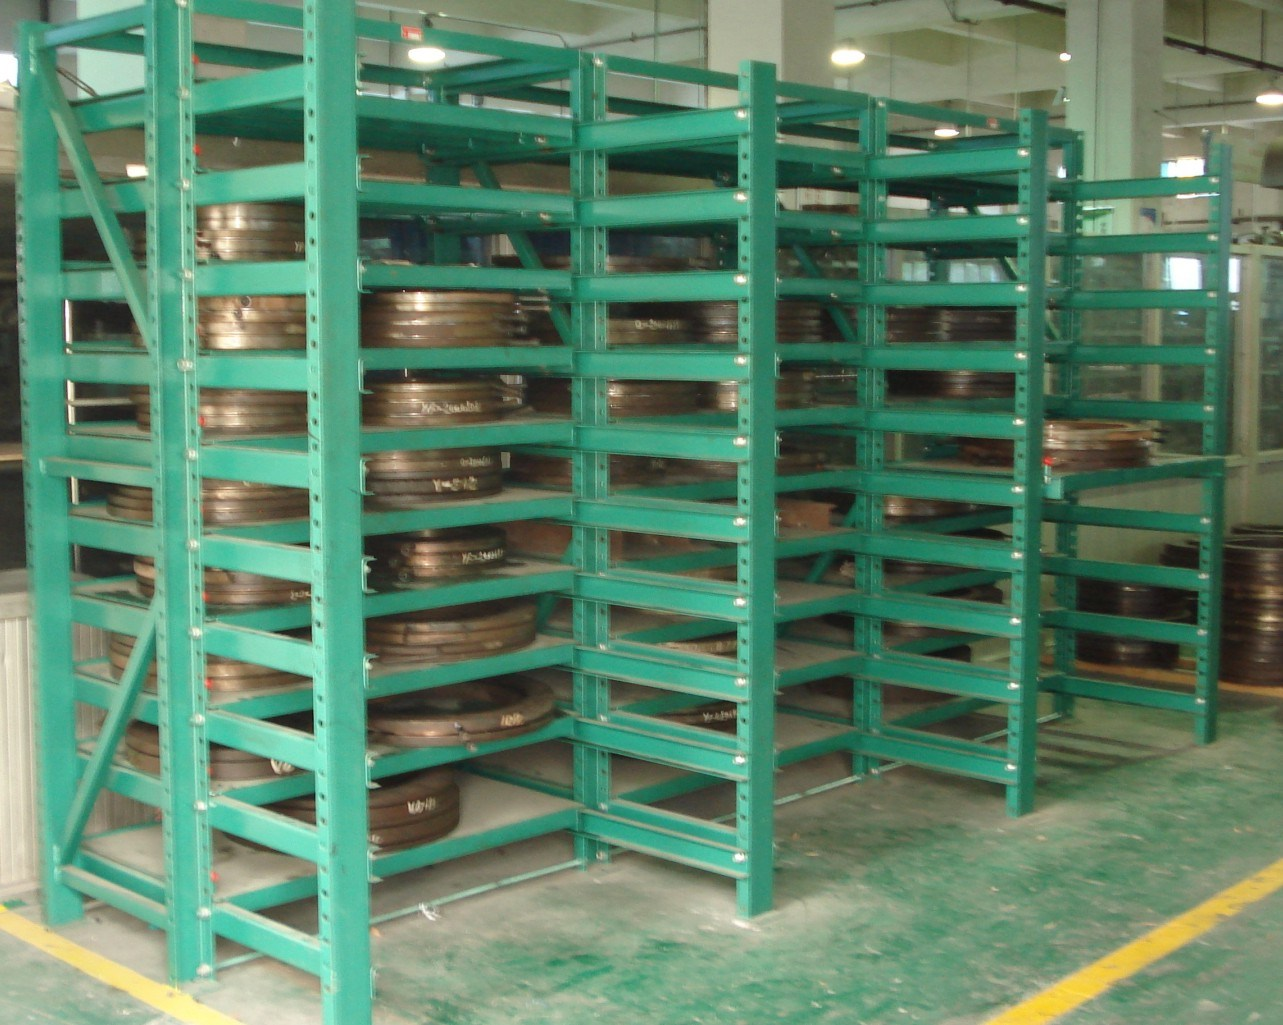 China Racking Manufacturer Slid Racking/Mould Racking pictures & photos